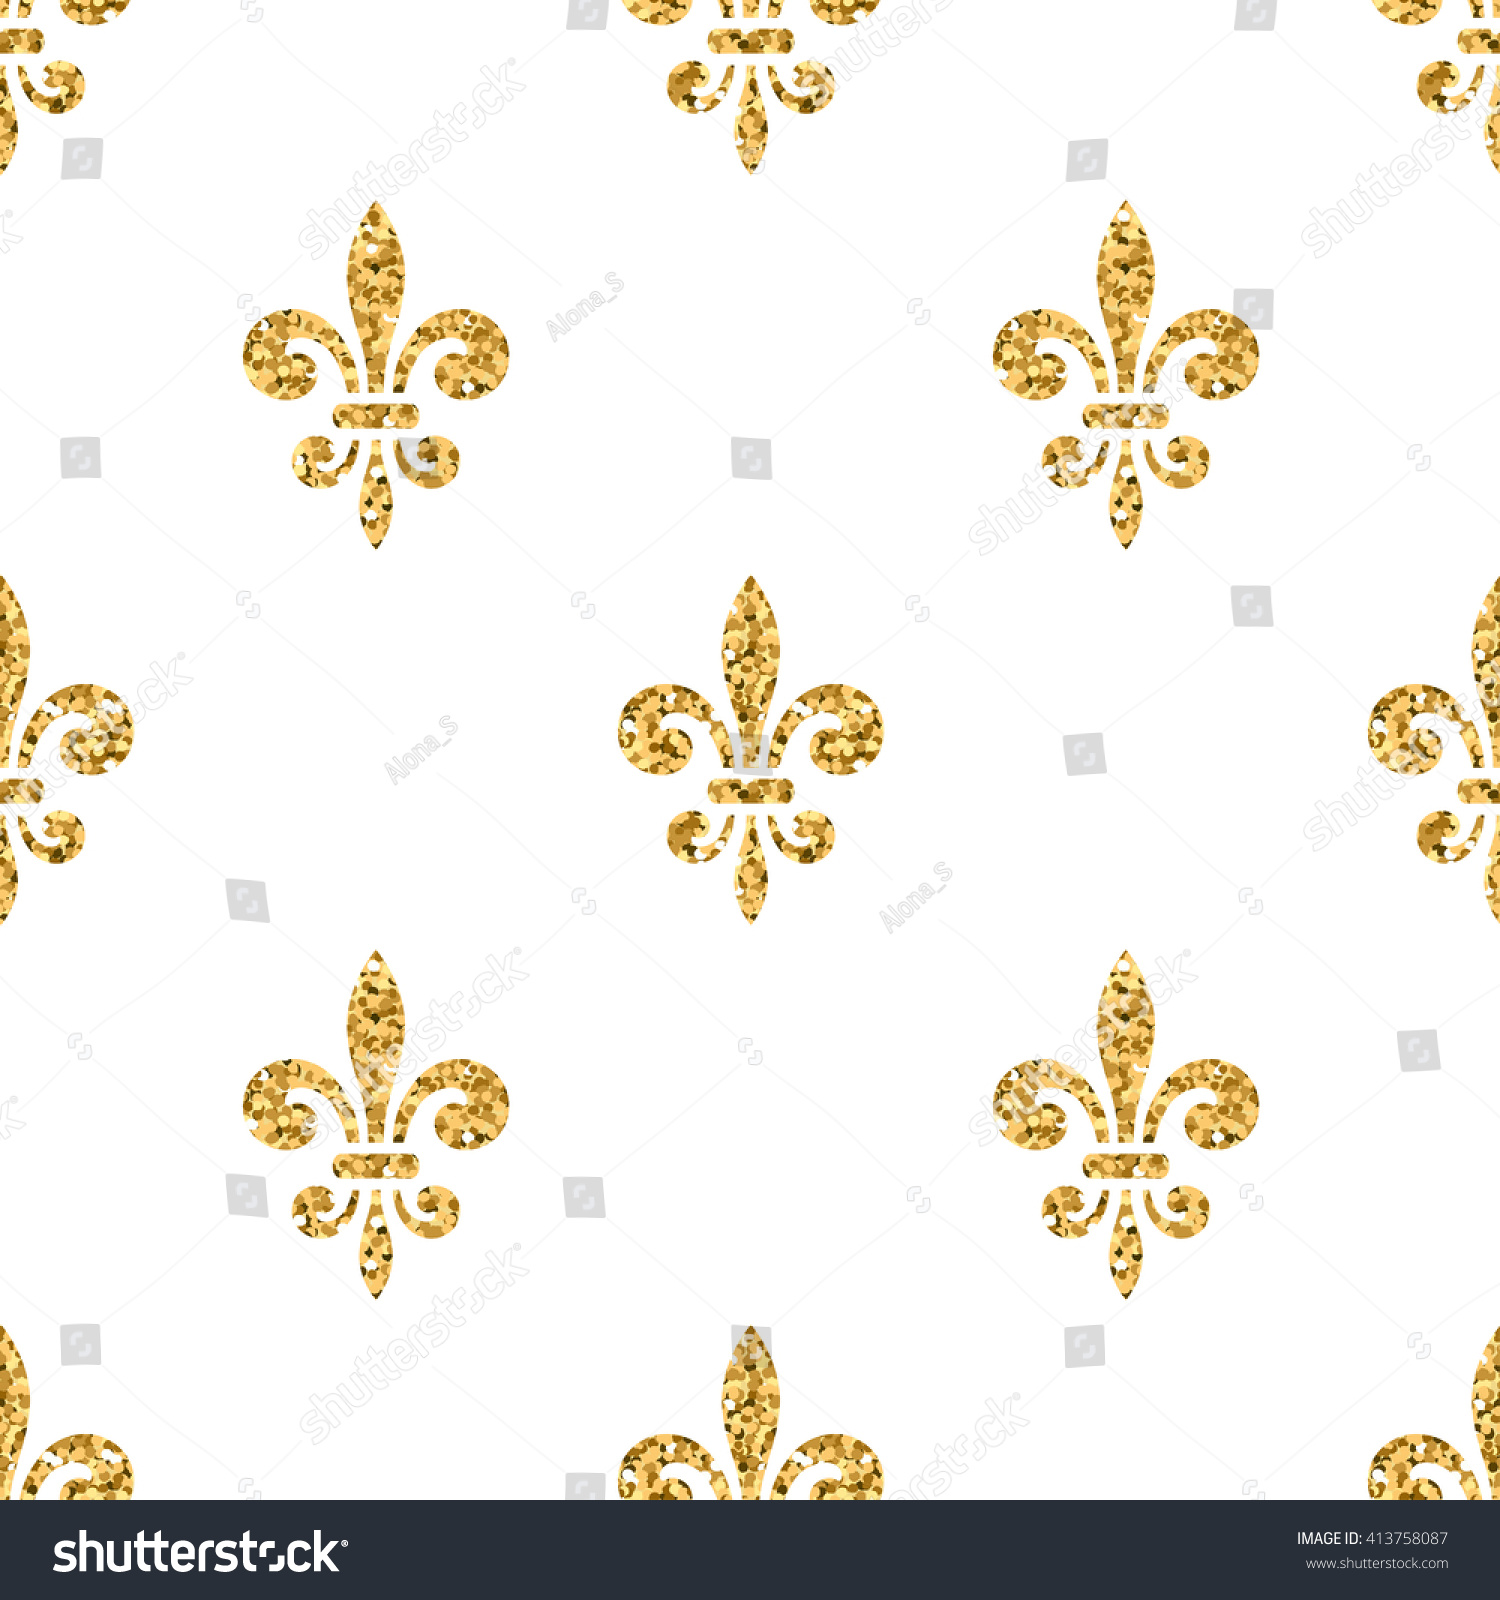 golden fleurdelis seamless pattern gold glitter stock